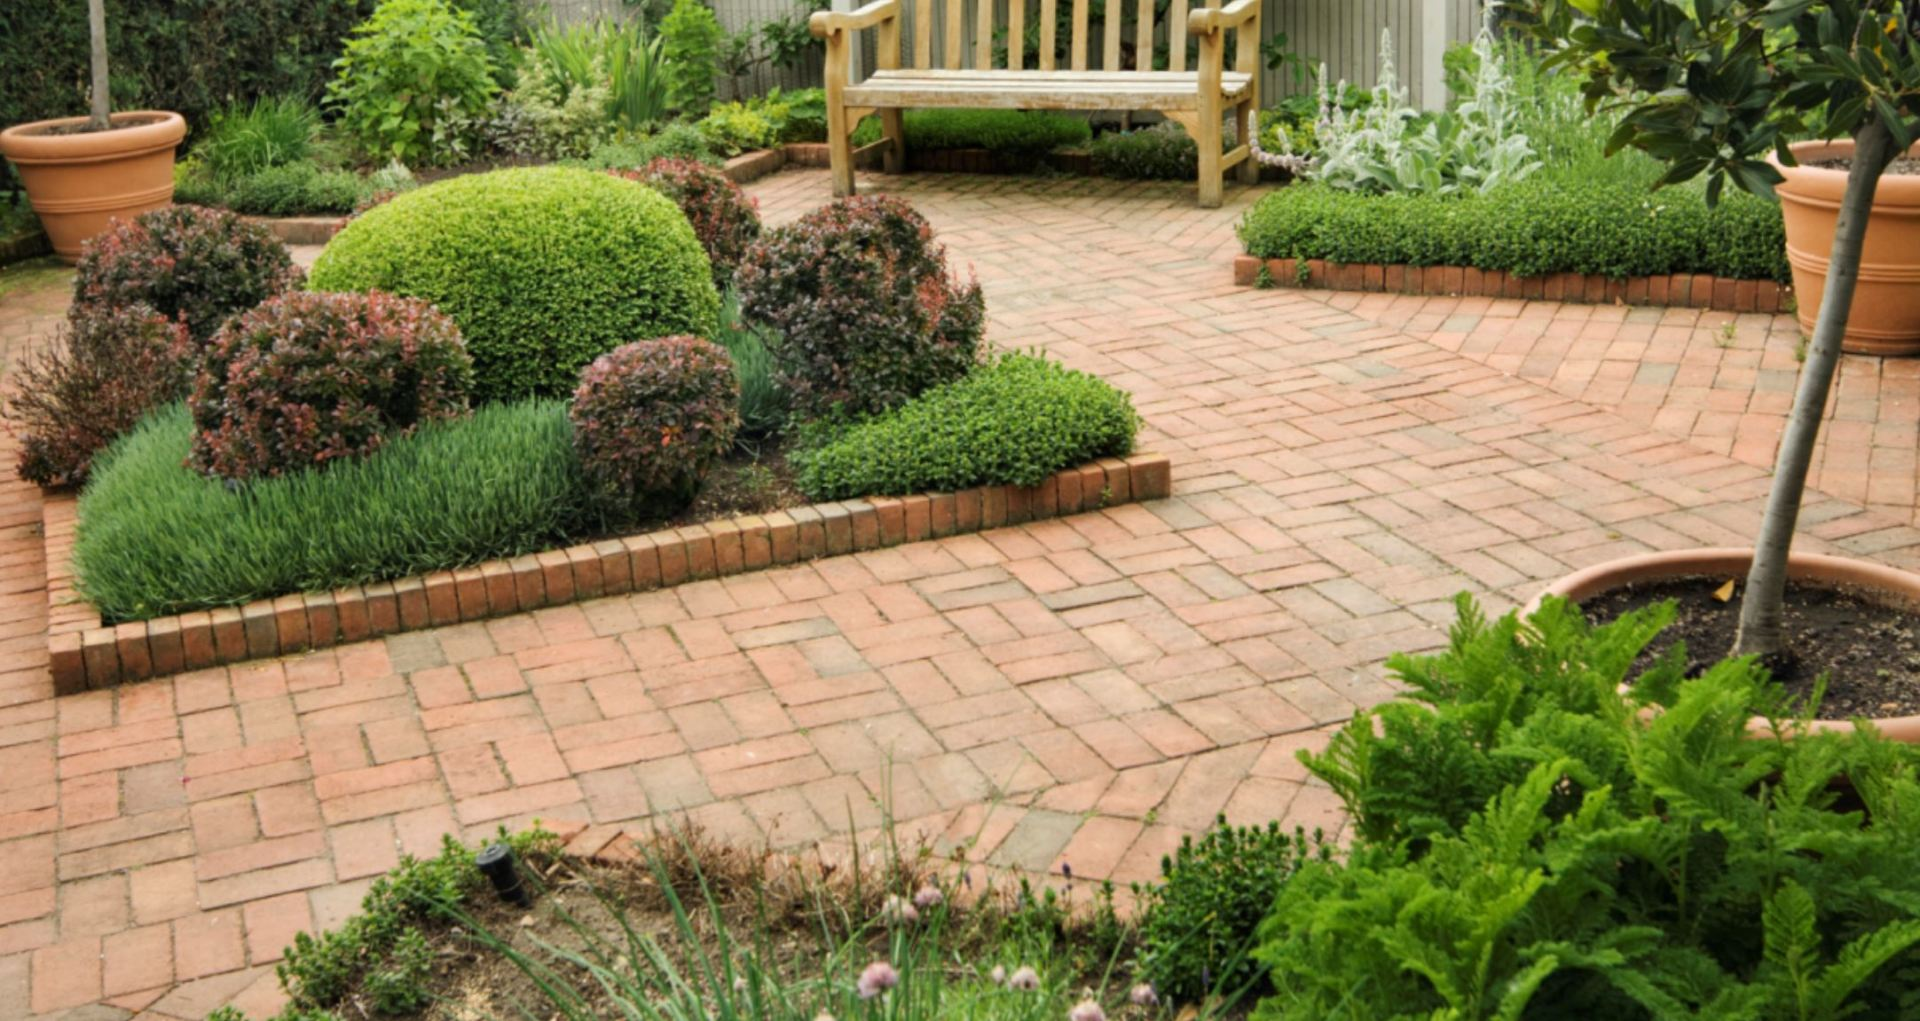 Our Total Solution will leave your home looking it's best, we'll even blow off your driveway before we leave.